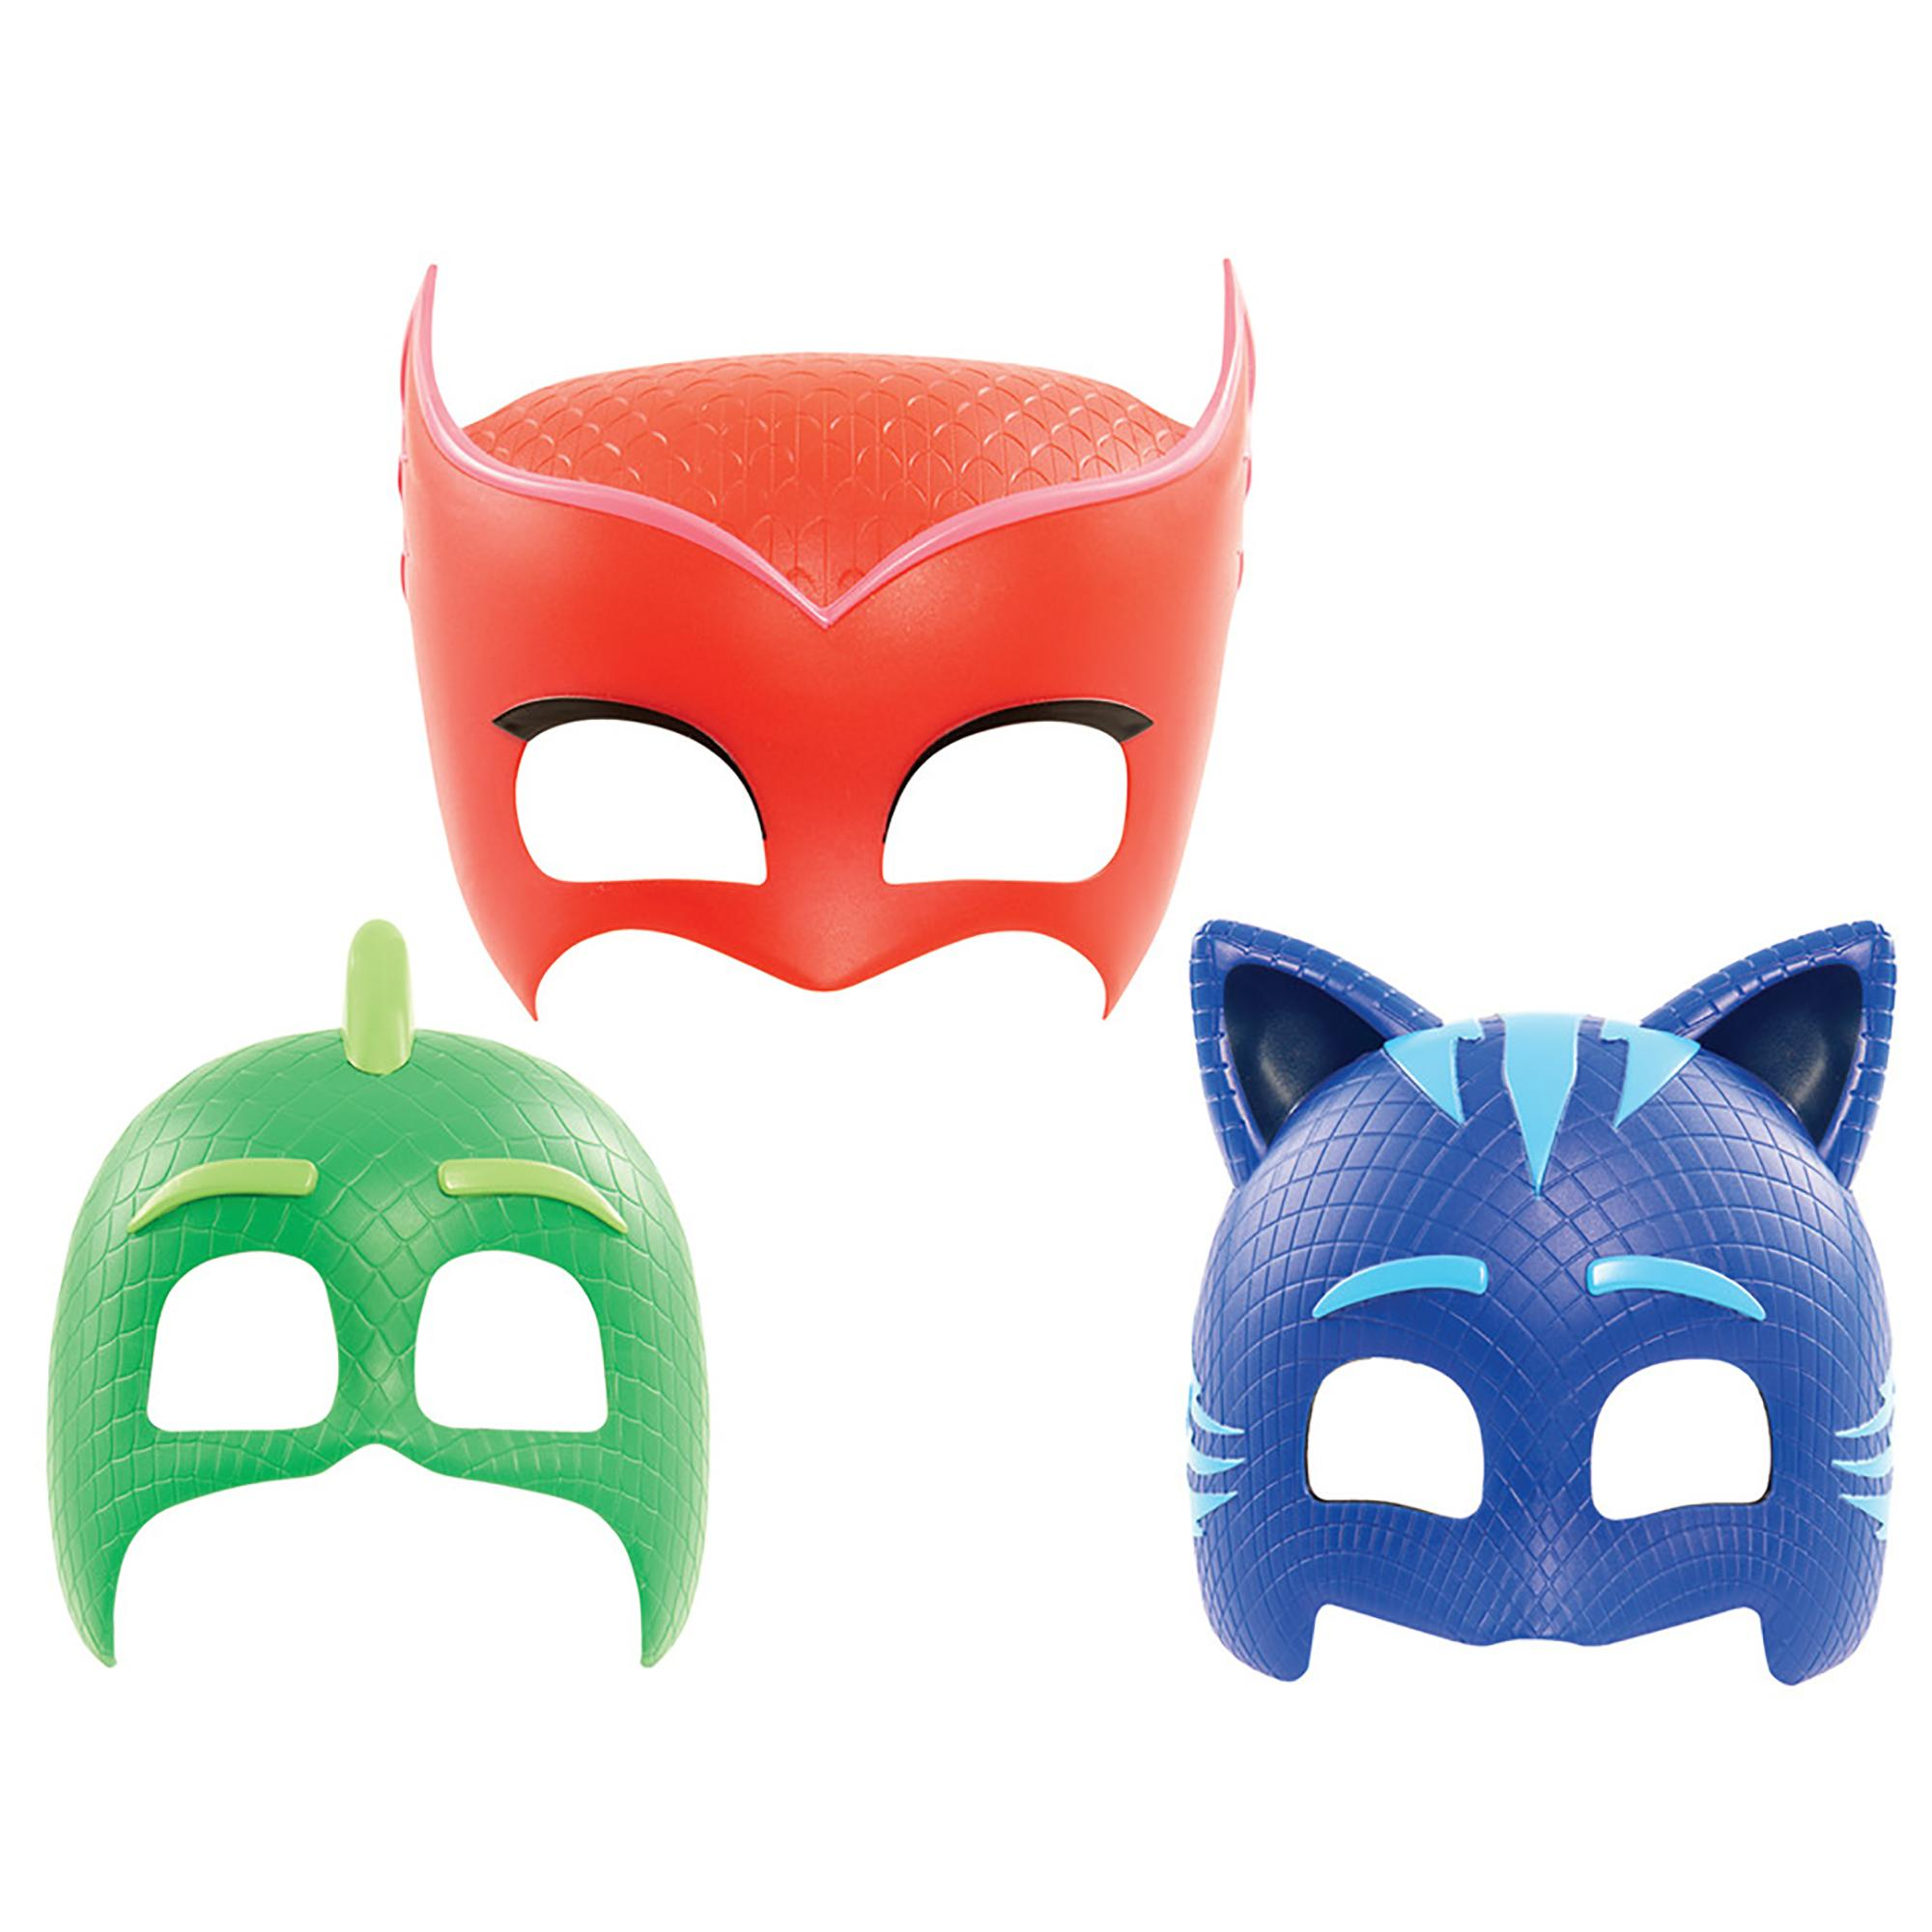 pj-masks-dress-up-masks-assortment-112350-0-1516209564000